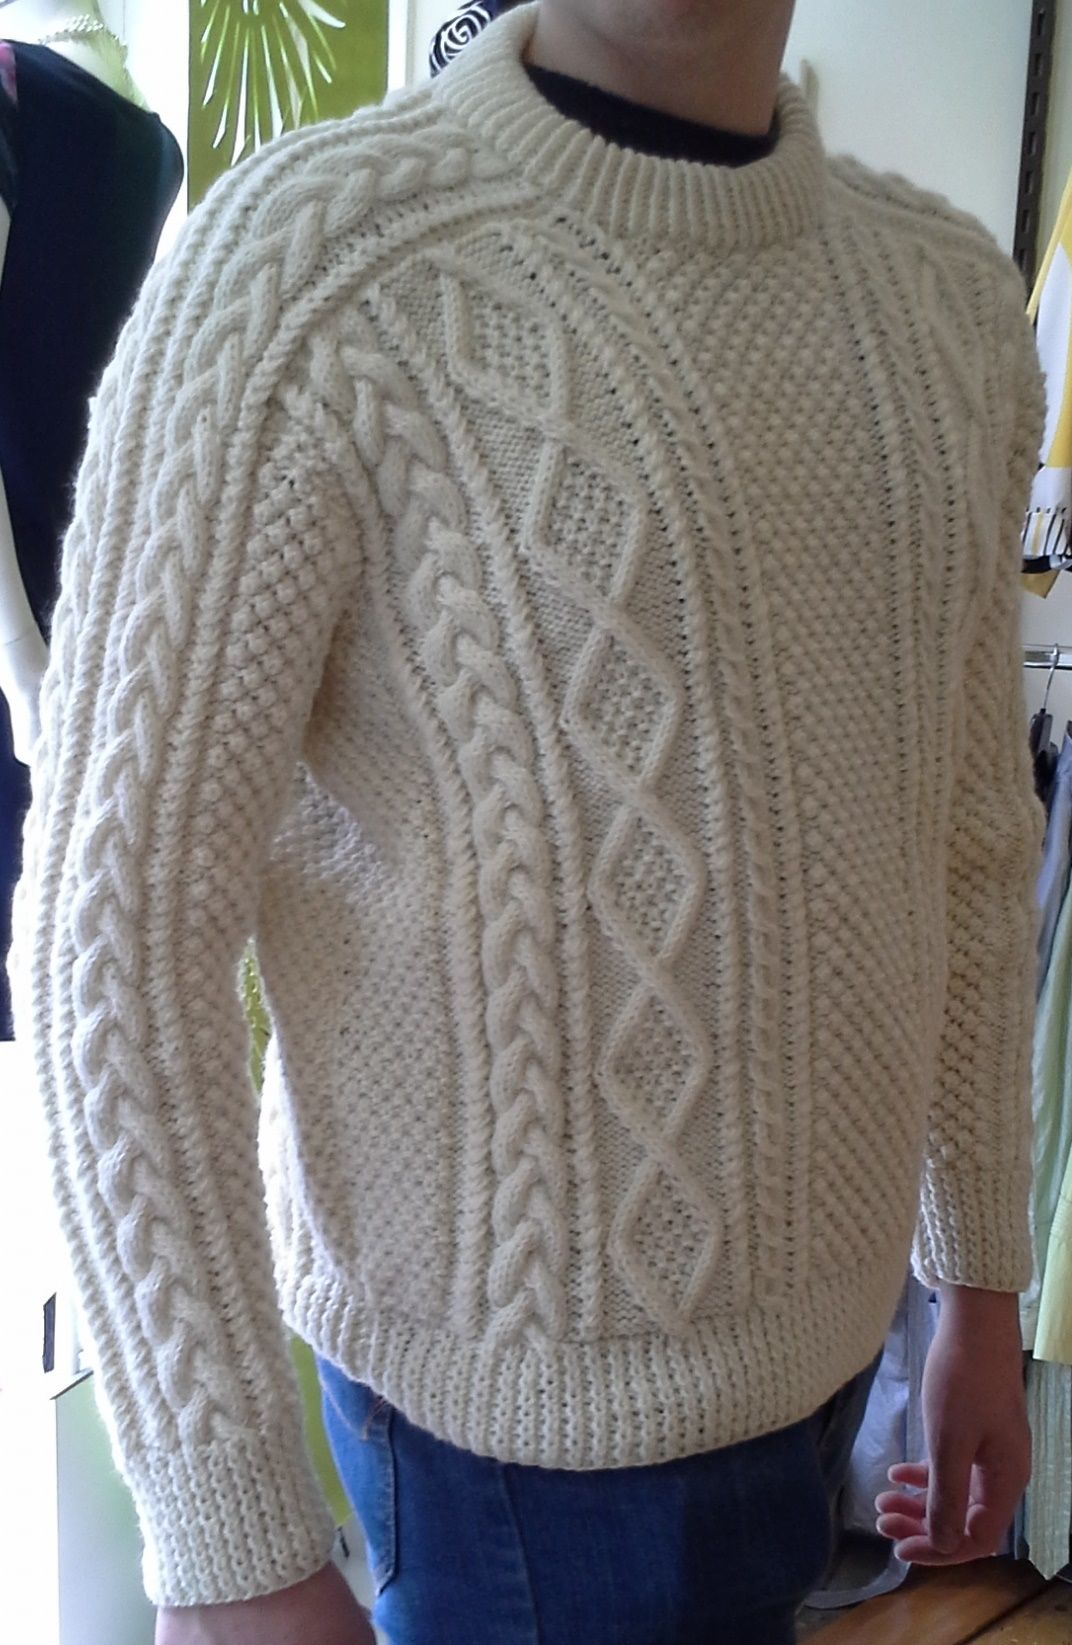 Superb quality handknitted Irish Fisherman sweater with ...